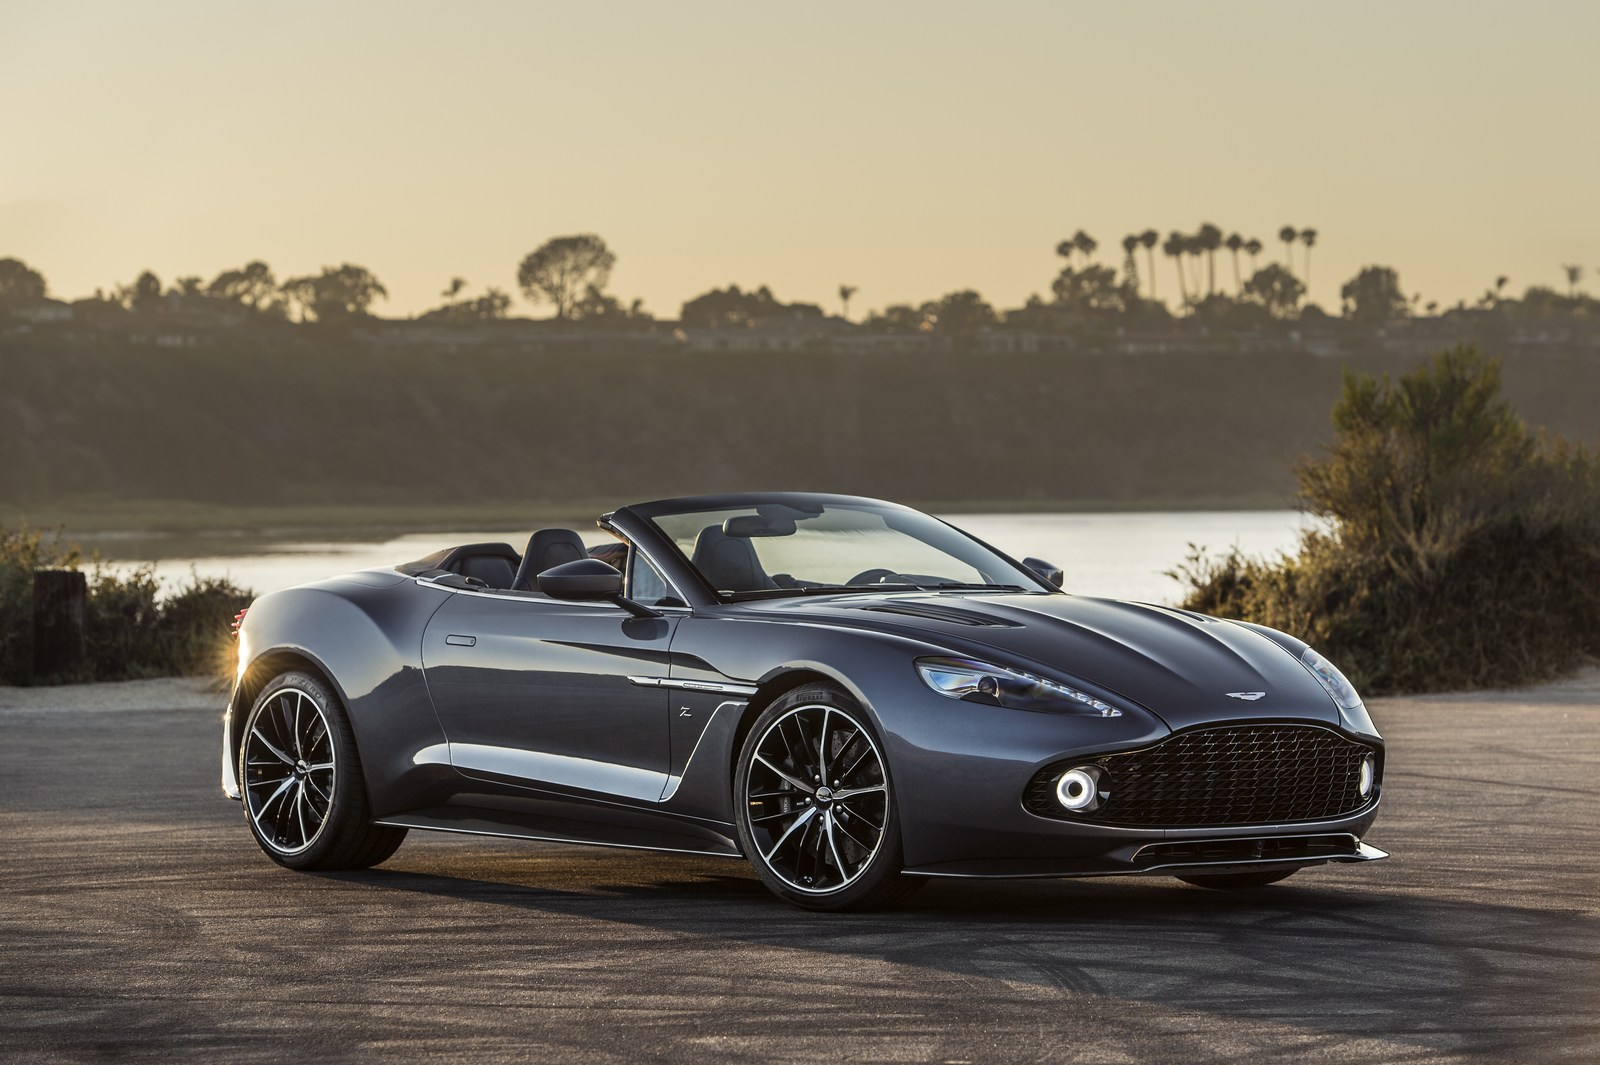 Sexy Aston Martin Vanquish Zagato Speedster Revealed With